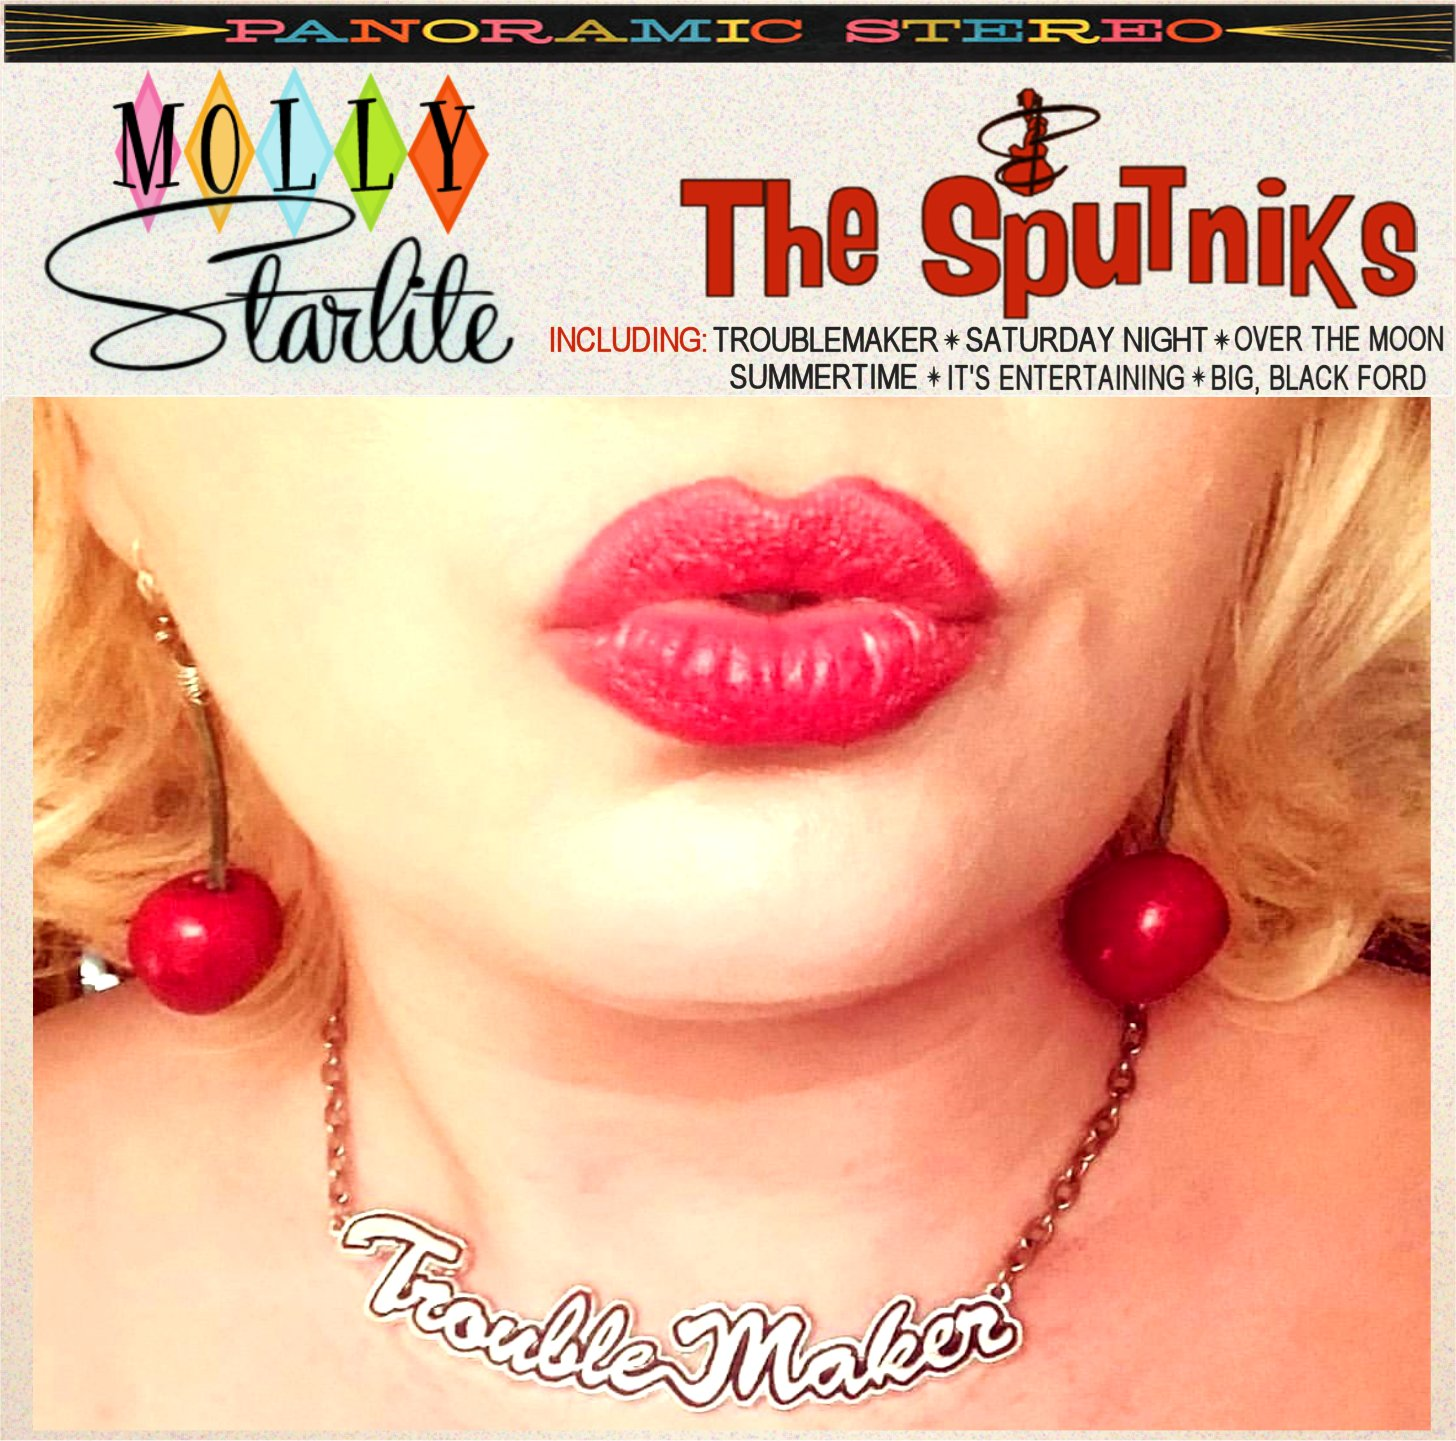 Troublemaker: The new EP from Molly Starlite and The Sputniks!